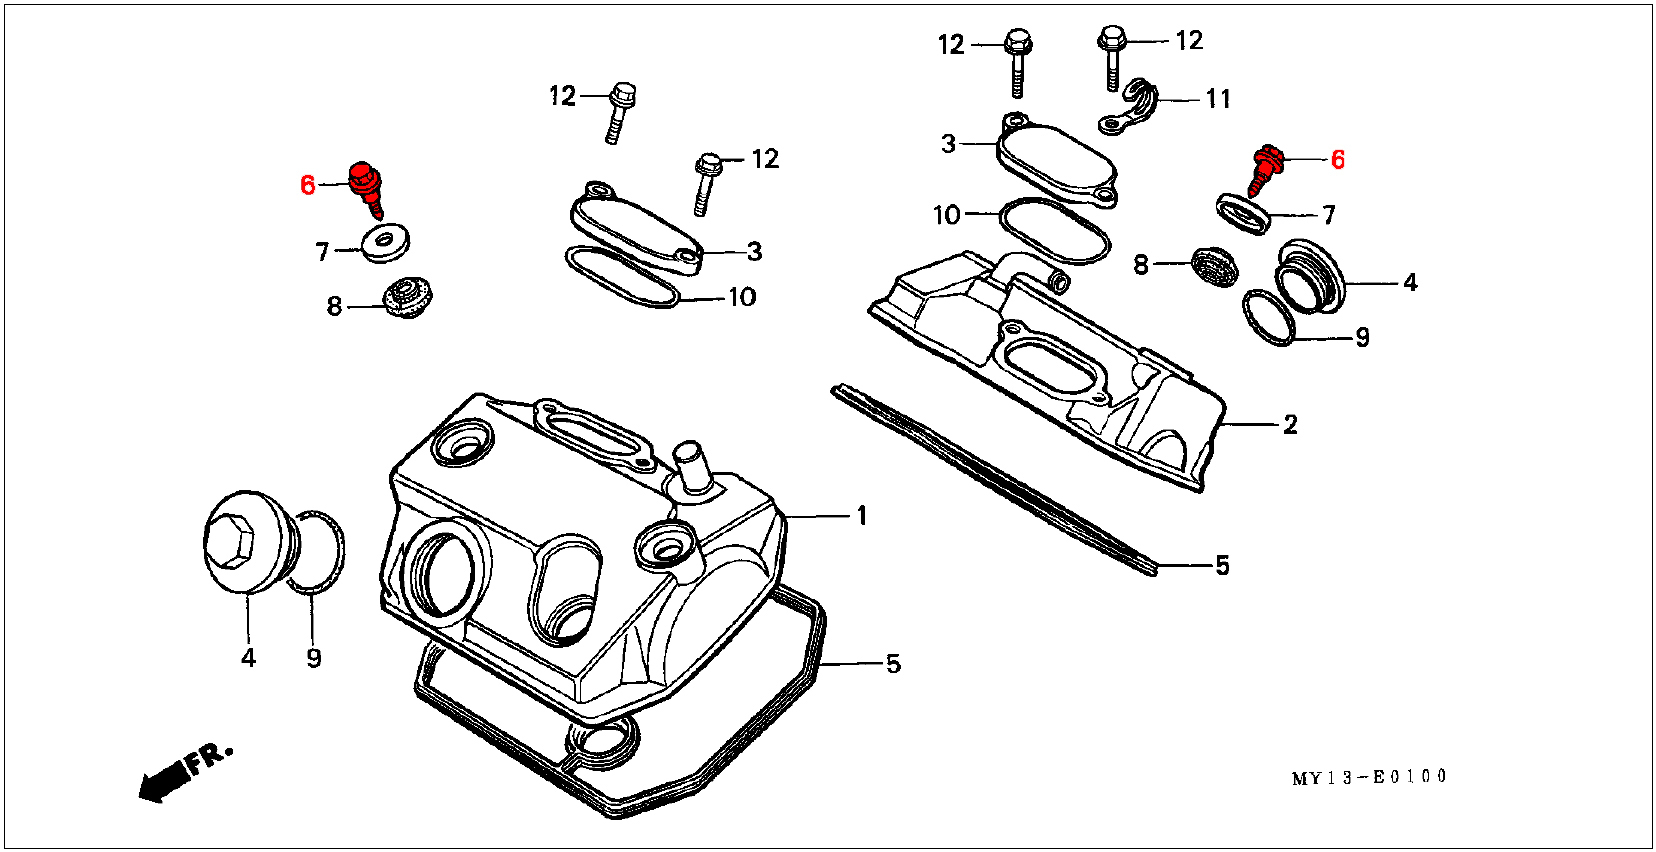 2 Stroke Oil Injection Systems likewise 90011MAW600 ClassicView 1 together with Bmw M5 Technical Specifications together with Harley Davidson Jewelry Box For Men moreover Edelbrock Motorcycle Carburetor. on ktm engine parts diagram